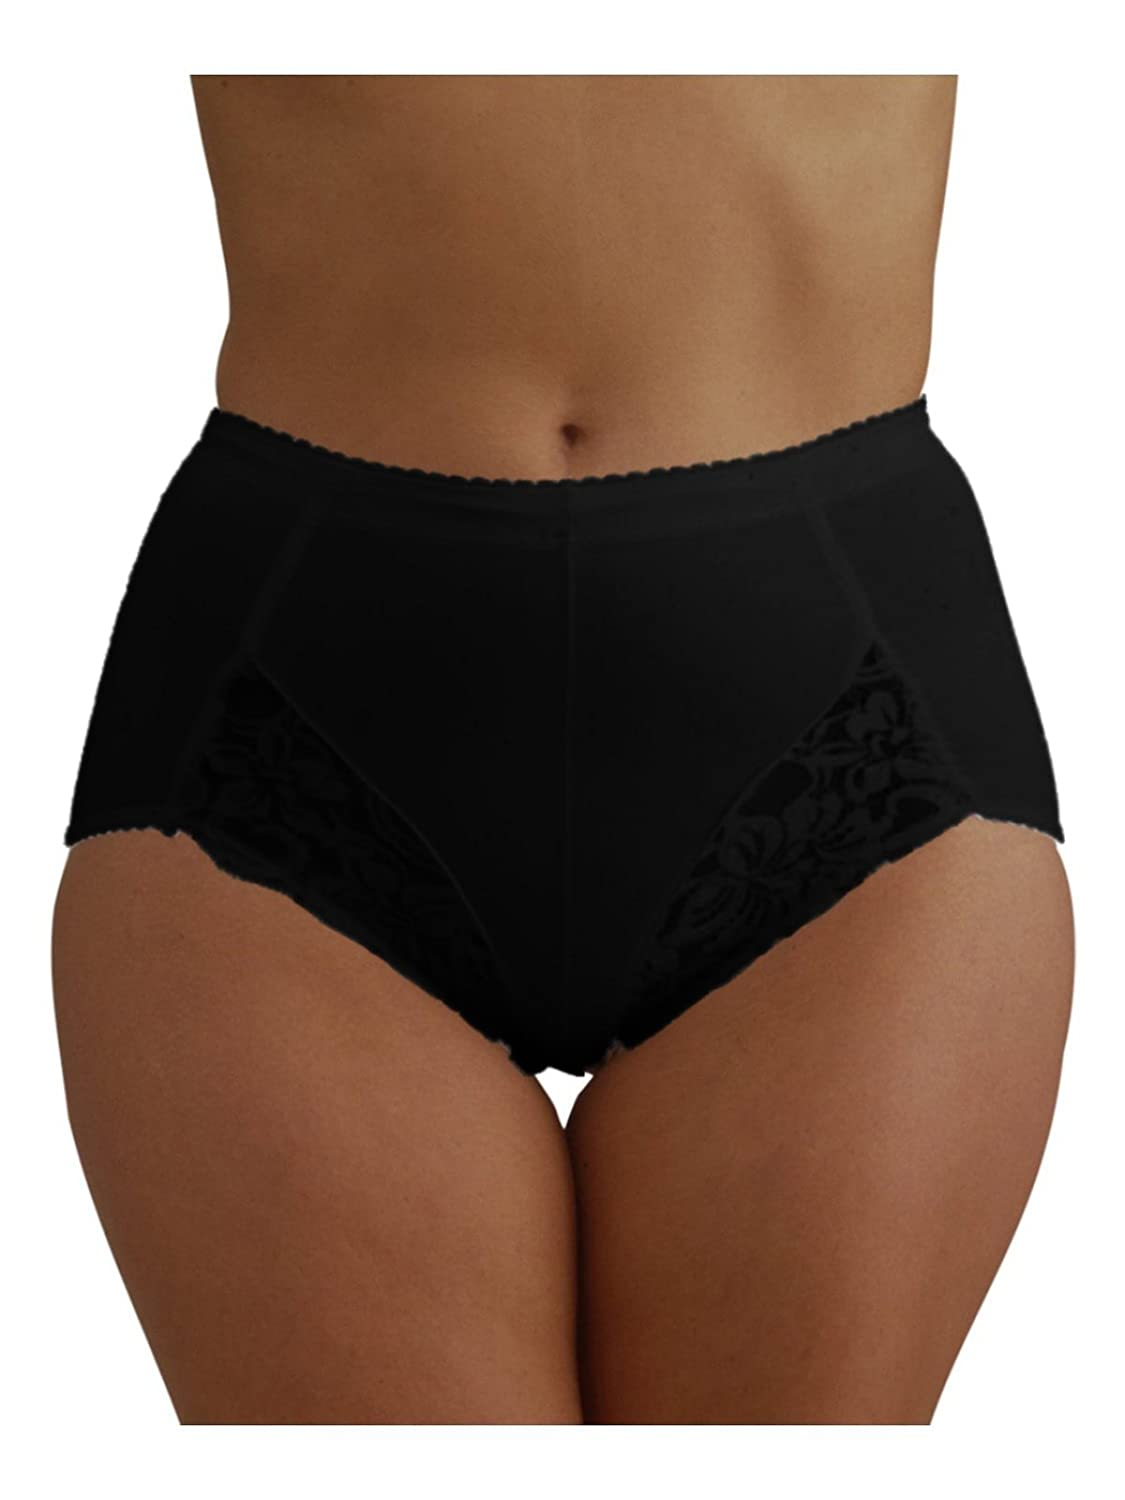 9d9a9daa7960 Ladies Light Control Support Briefs Knickers with Lace Detail / White or  Black / Various Sizes: Amazon.co.uk: Clothing